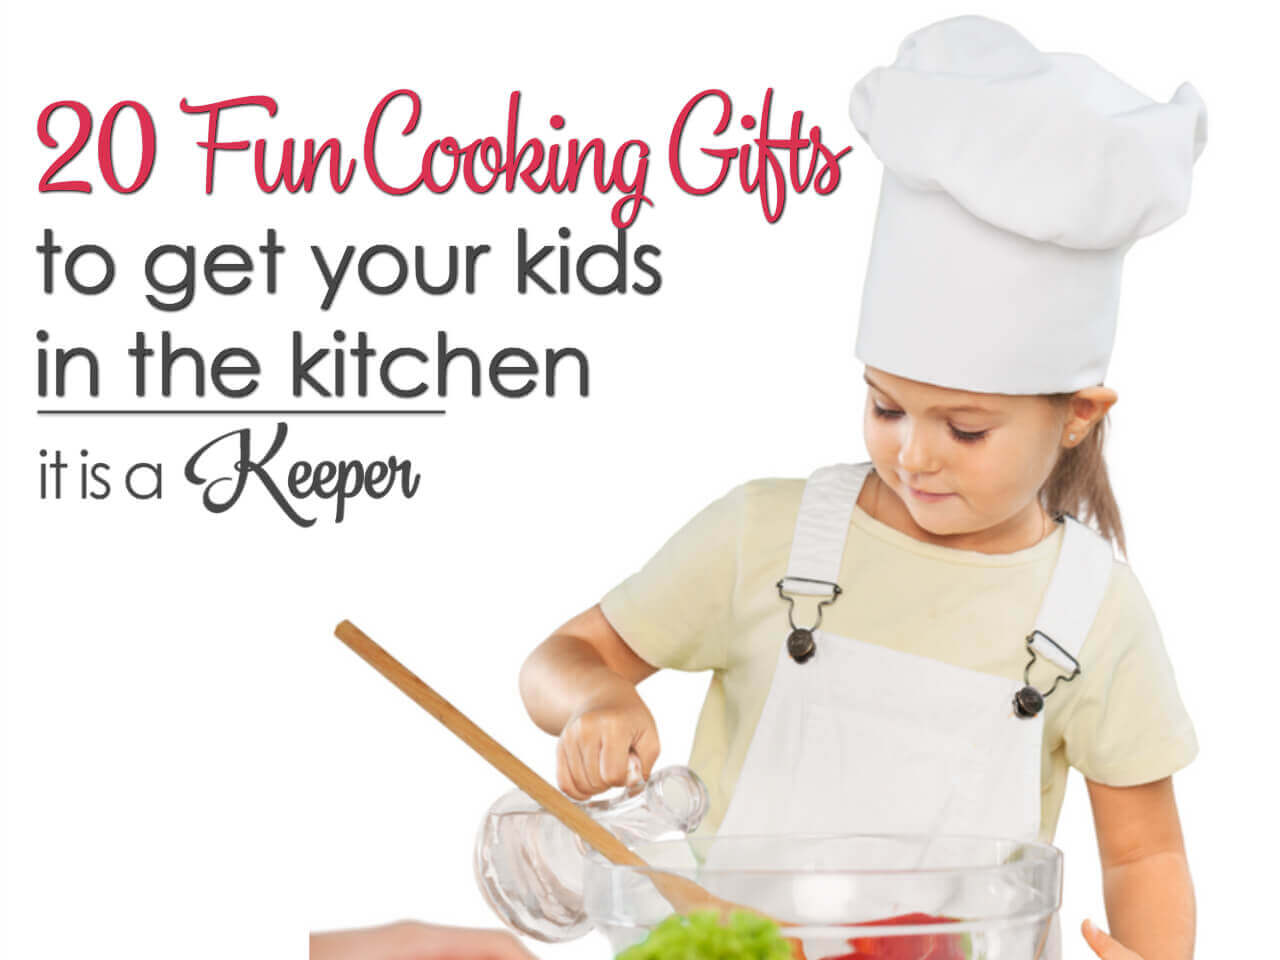 20 fun cooking gifts to get kids in the kitchen